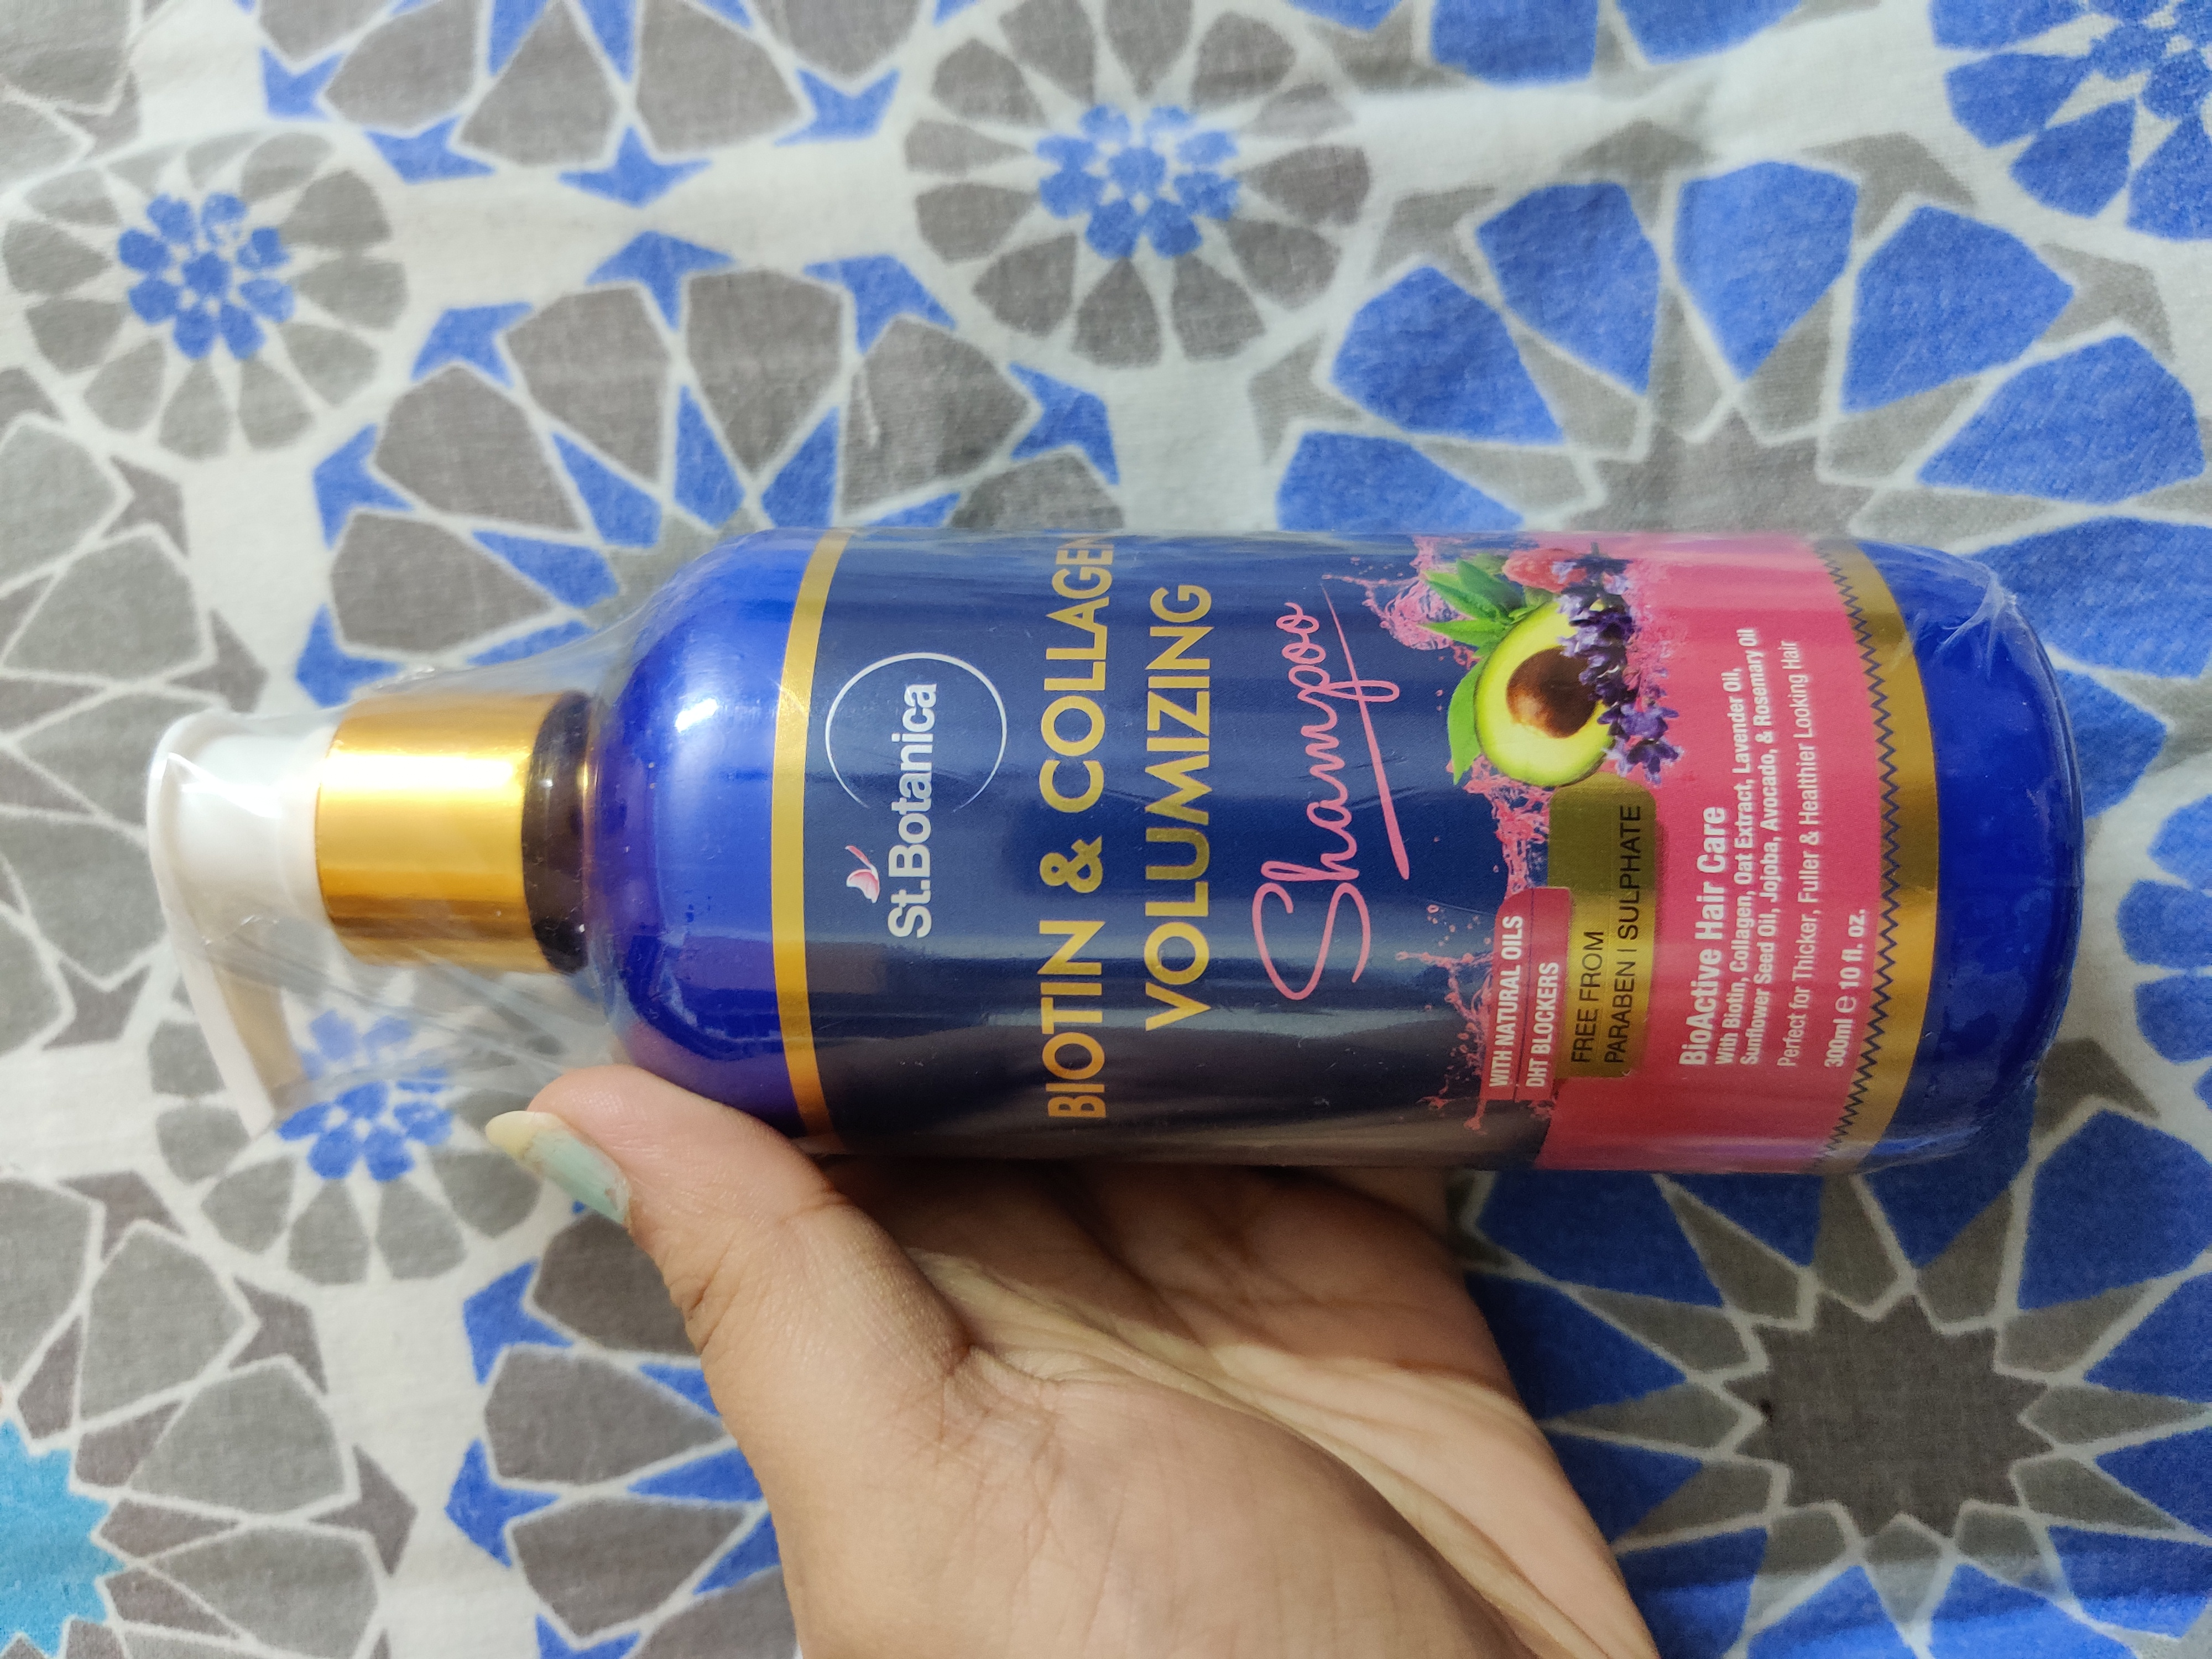 St.Botanica Biotin & Collagen Volumizing Hair Shampoo-Silky, gives strength and volume to your hair.-By pooja16